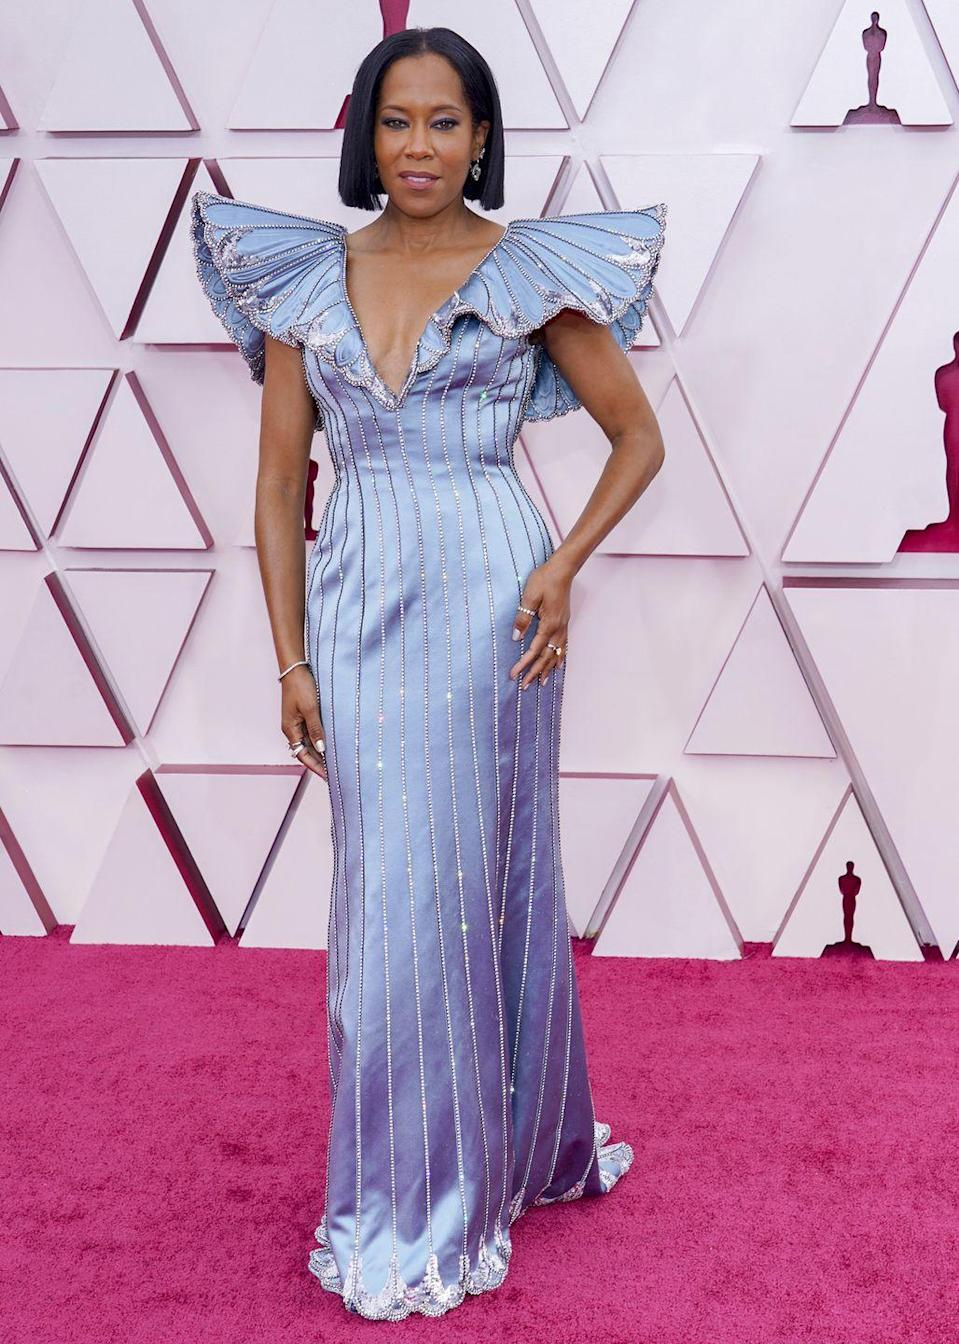 <p>Regina King never fails to land on every best dressed list, and the 2021 Academy Awards was no different. The actress worked with her stylist duo, Wayman and Micah, on this beautiful embellished Louis Vuitton gown with a dramatic cape detail in a Cinderella blue. According to the team, the dress took over 140 hours to make and was embroidered with over 62,000 sequins and 4,000 crystals.</p>